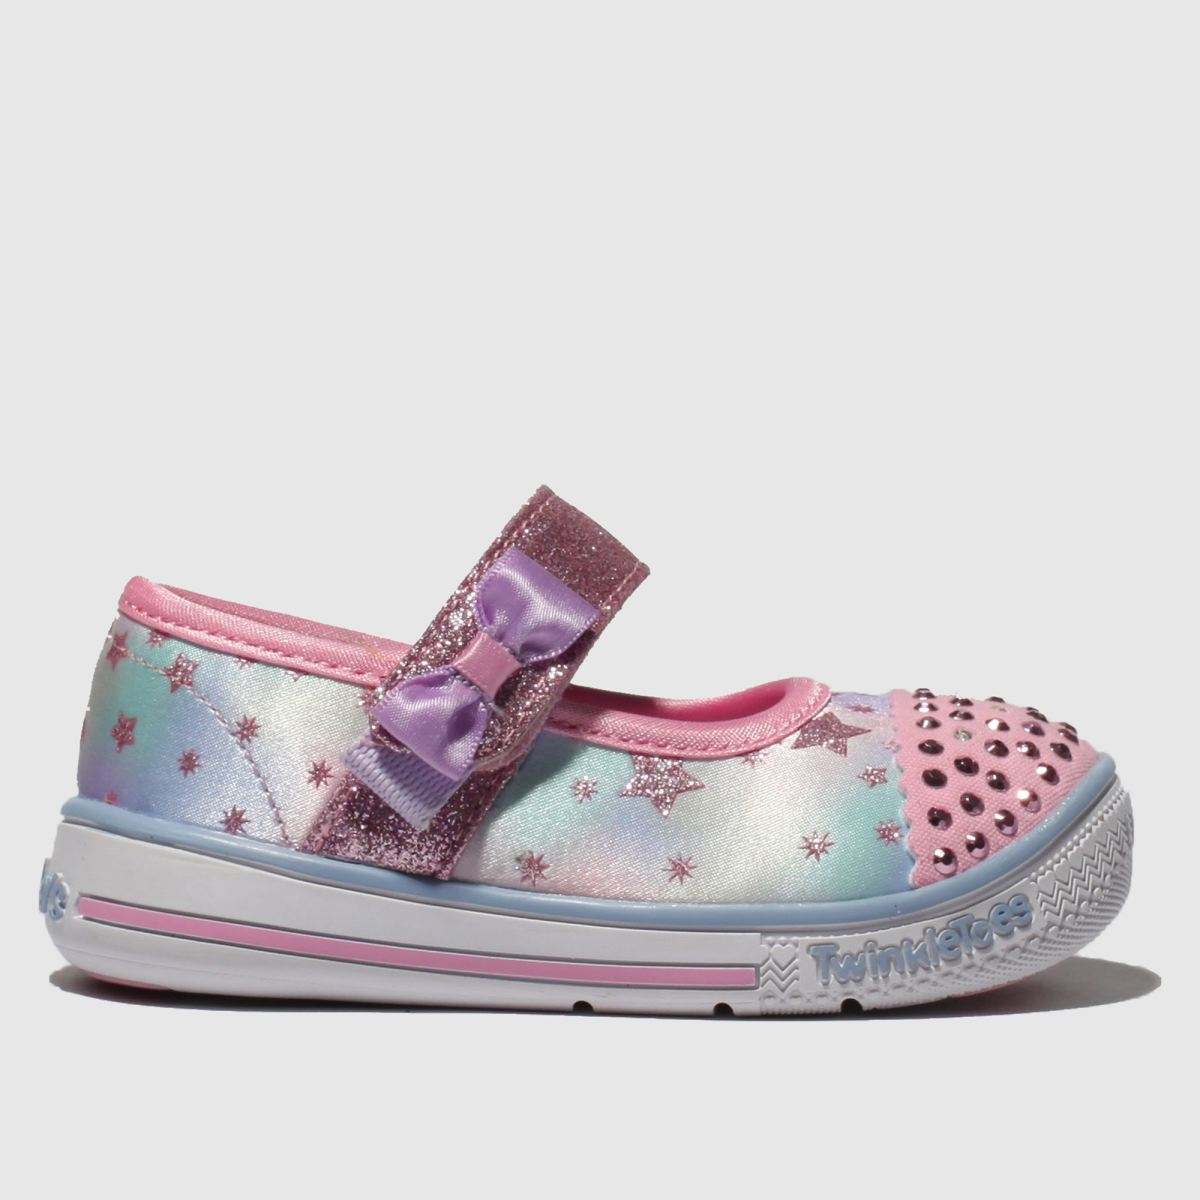 Skechers Pink Twinkle Play Trainers Toddler